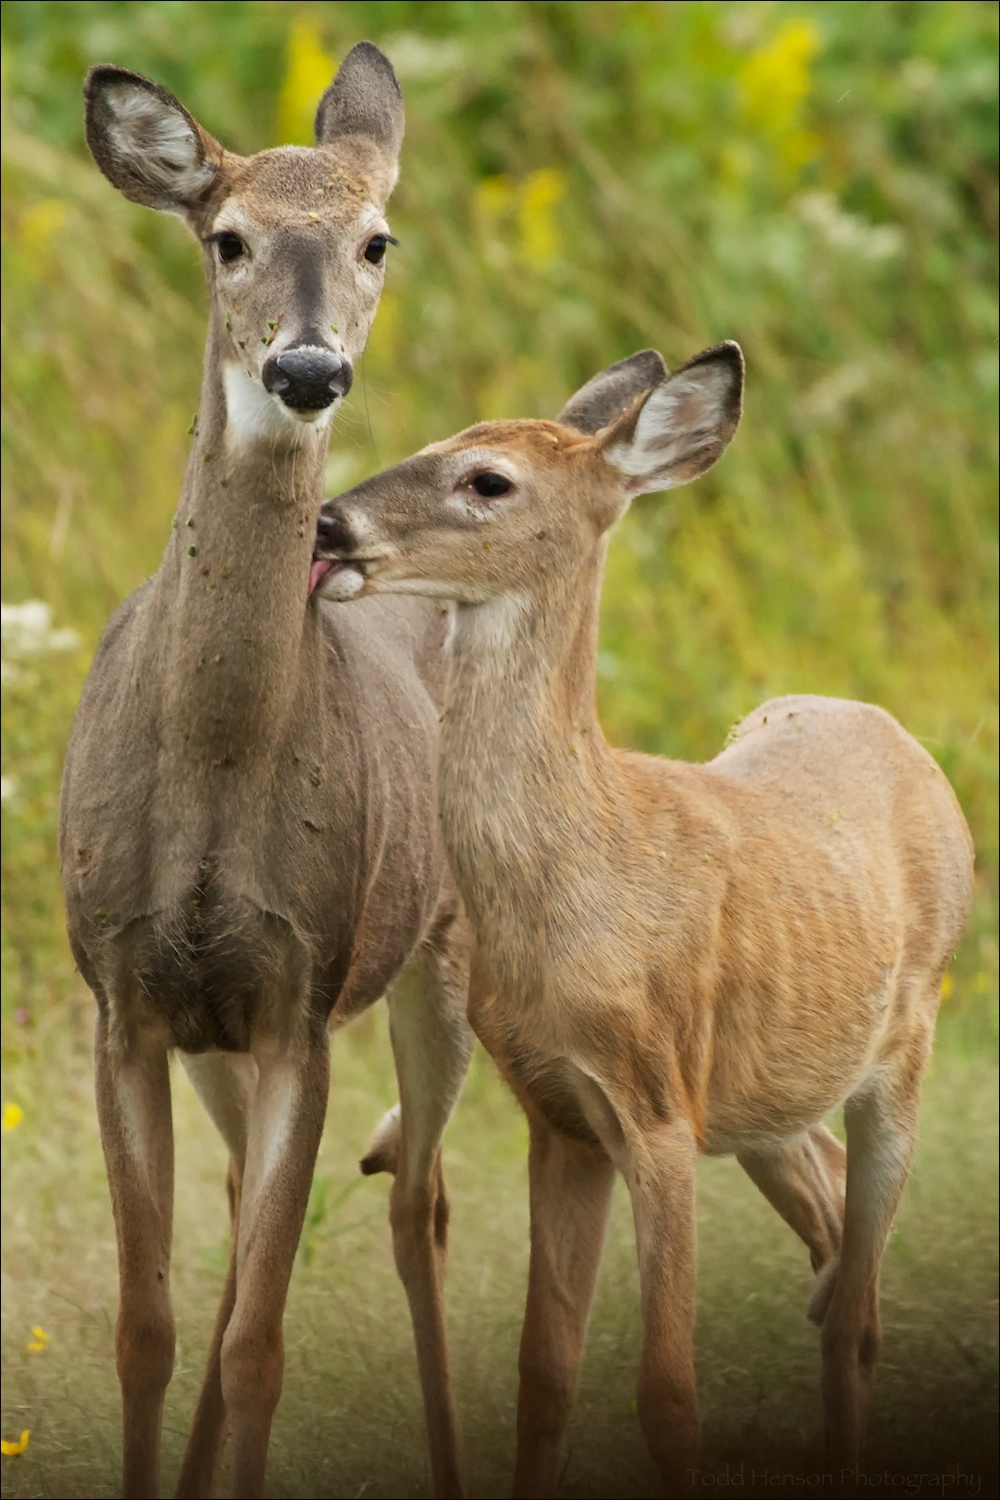 Pair of white-tailed deer. They appear to have been through some thorny bushes recently.